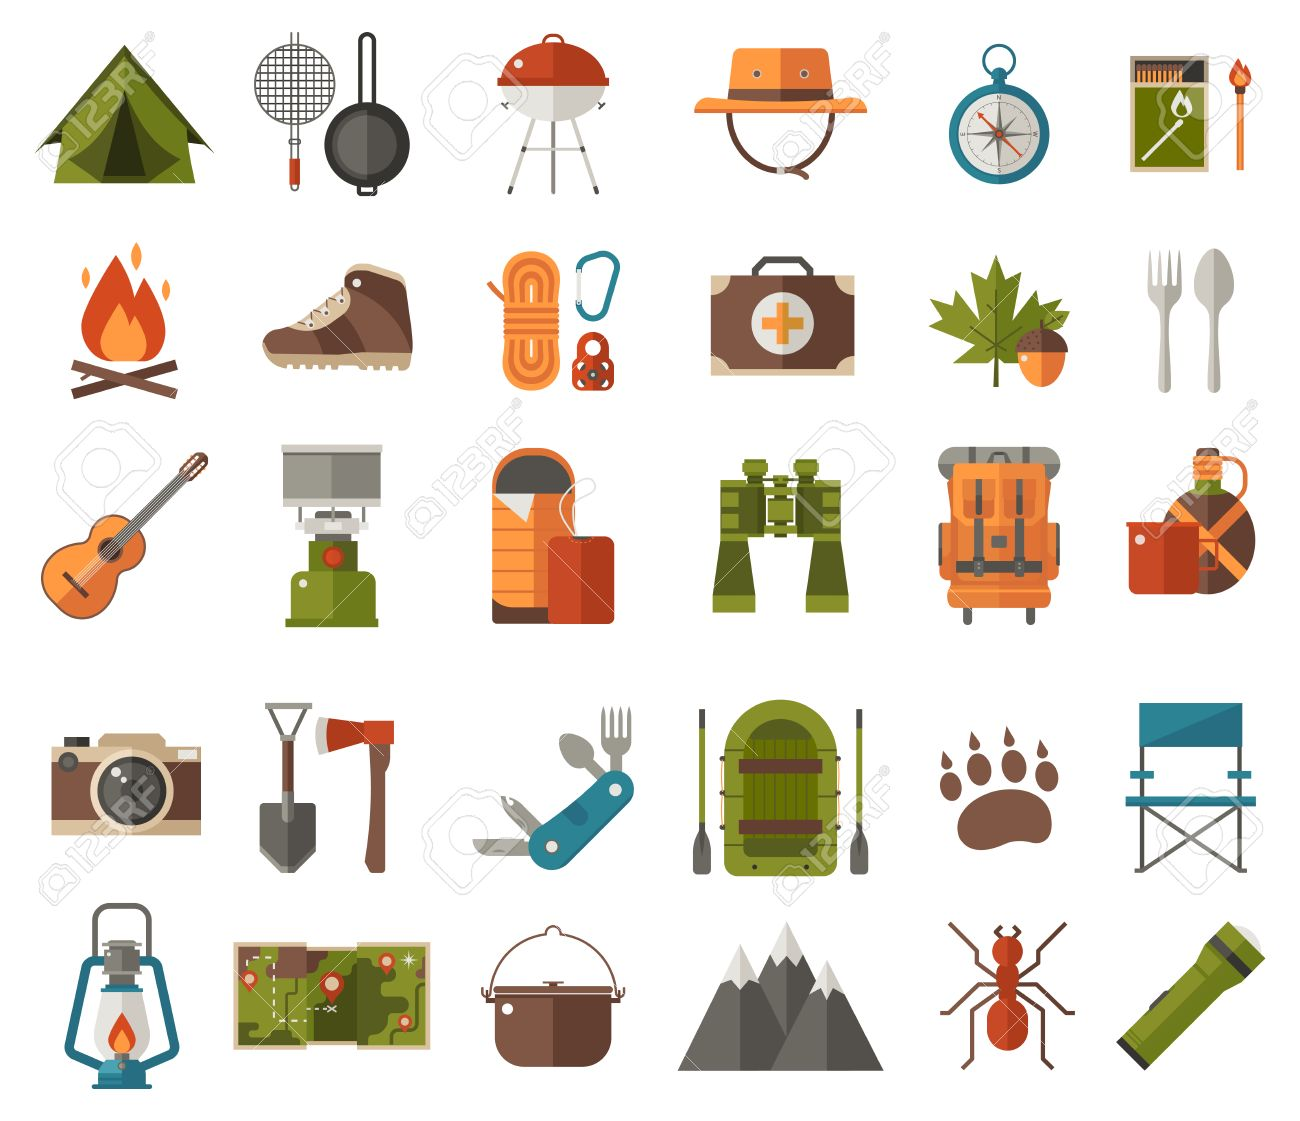 Camping Icon Set Camp Gear And Adventure Activity Elements Hiking Icons Collection Binoculars